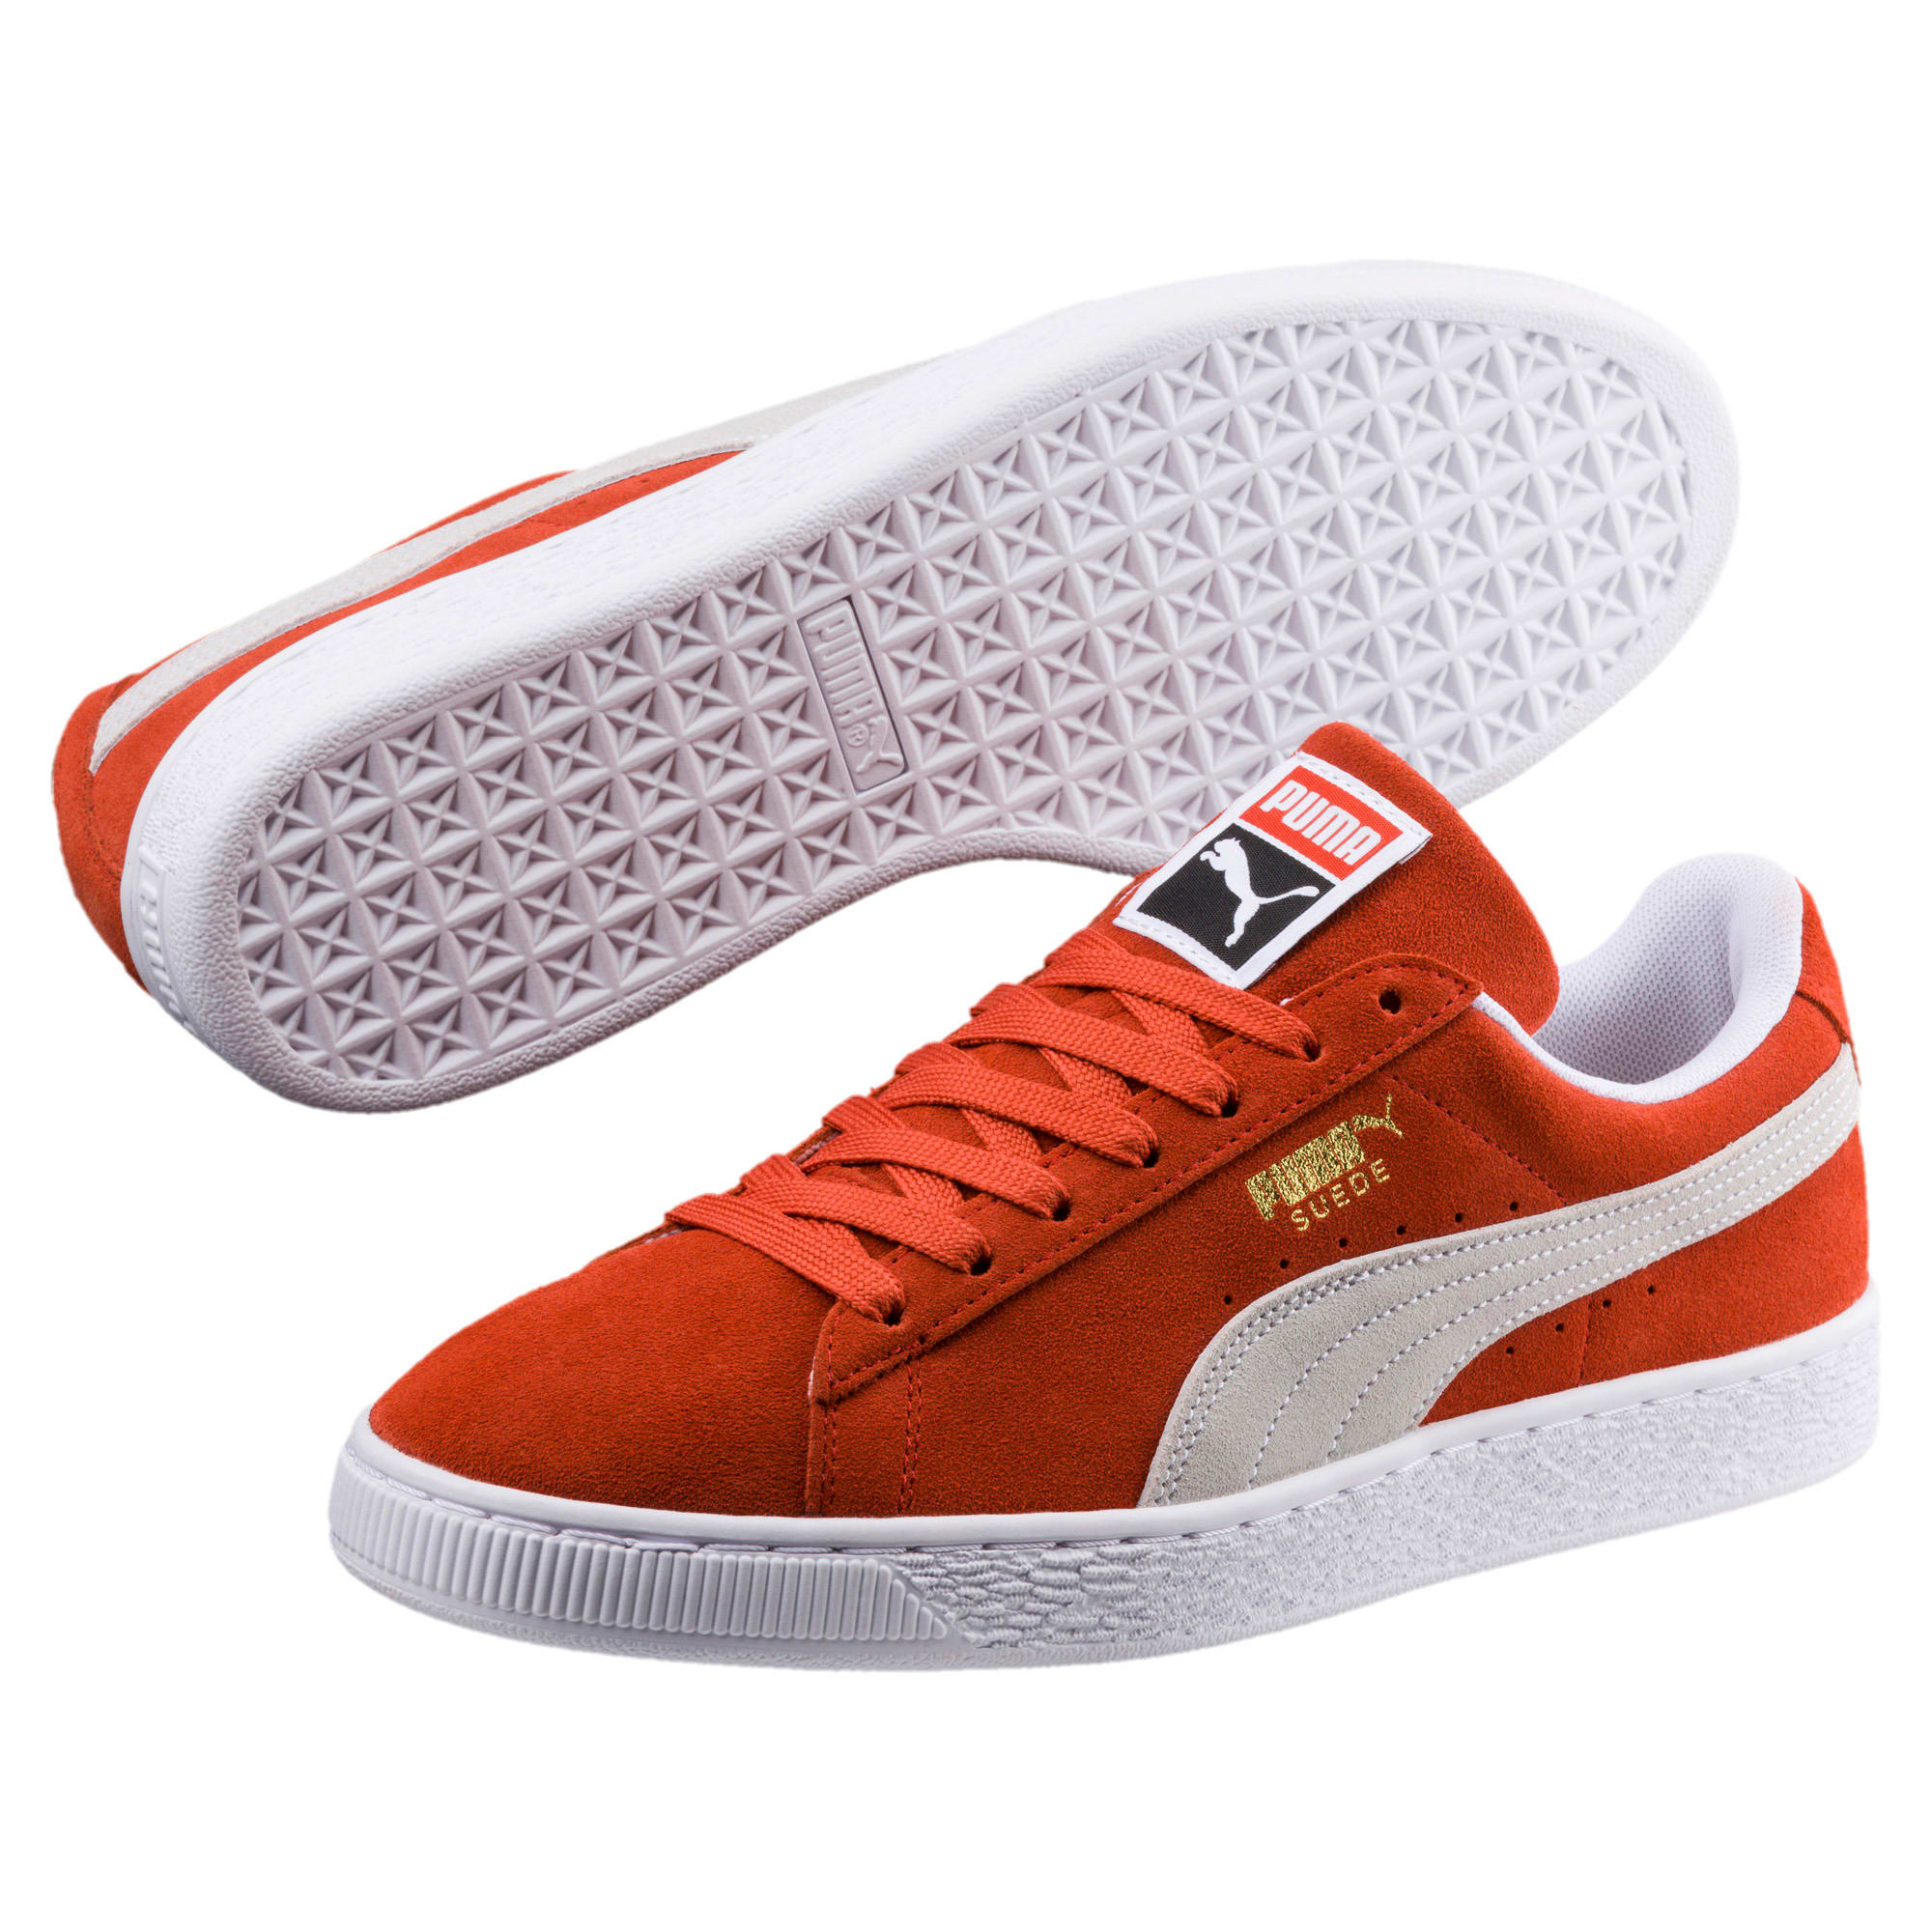 Thumbnail 2 of Suede Classic Trainers, Burnt Ochre-Puma White, medium-IND